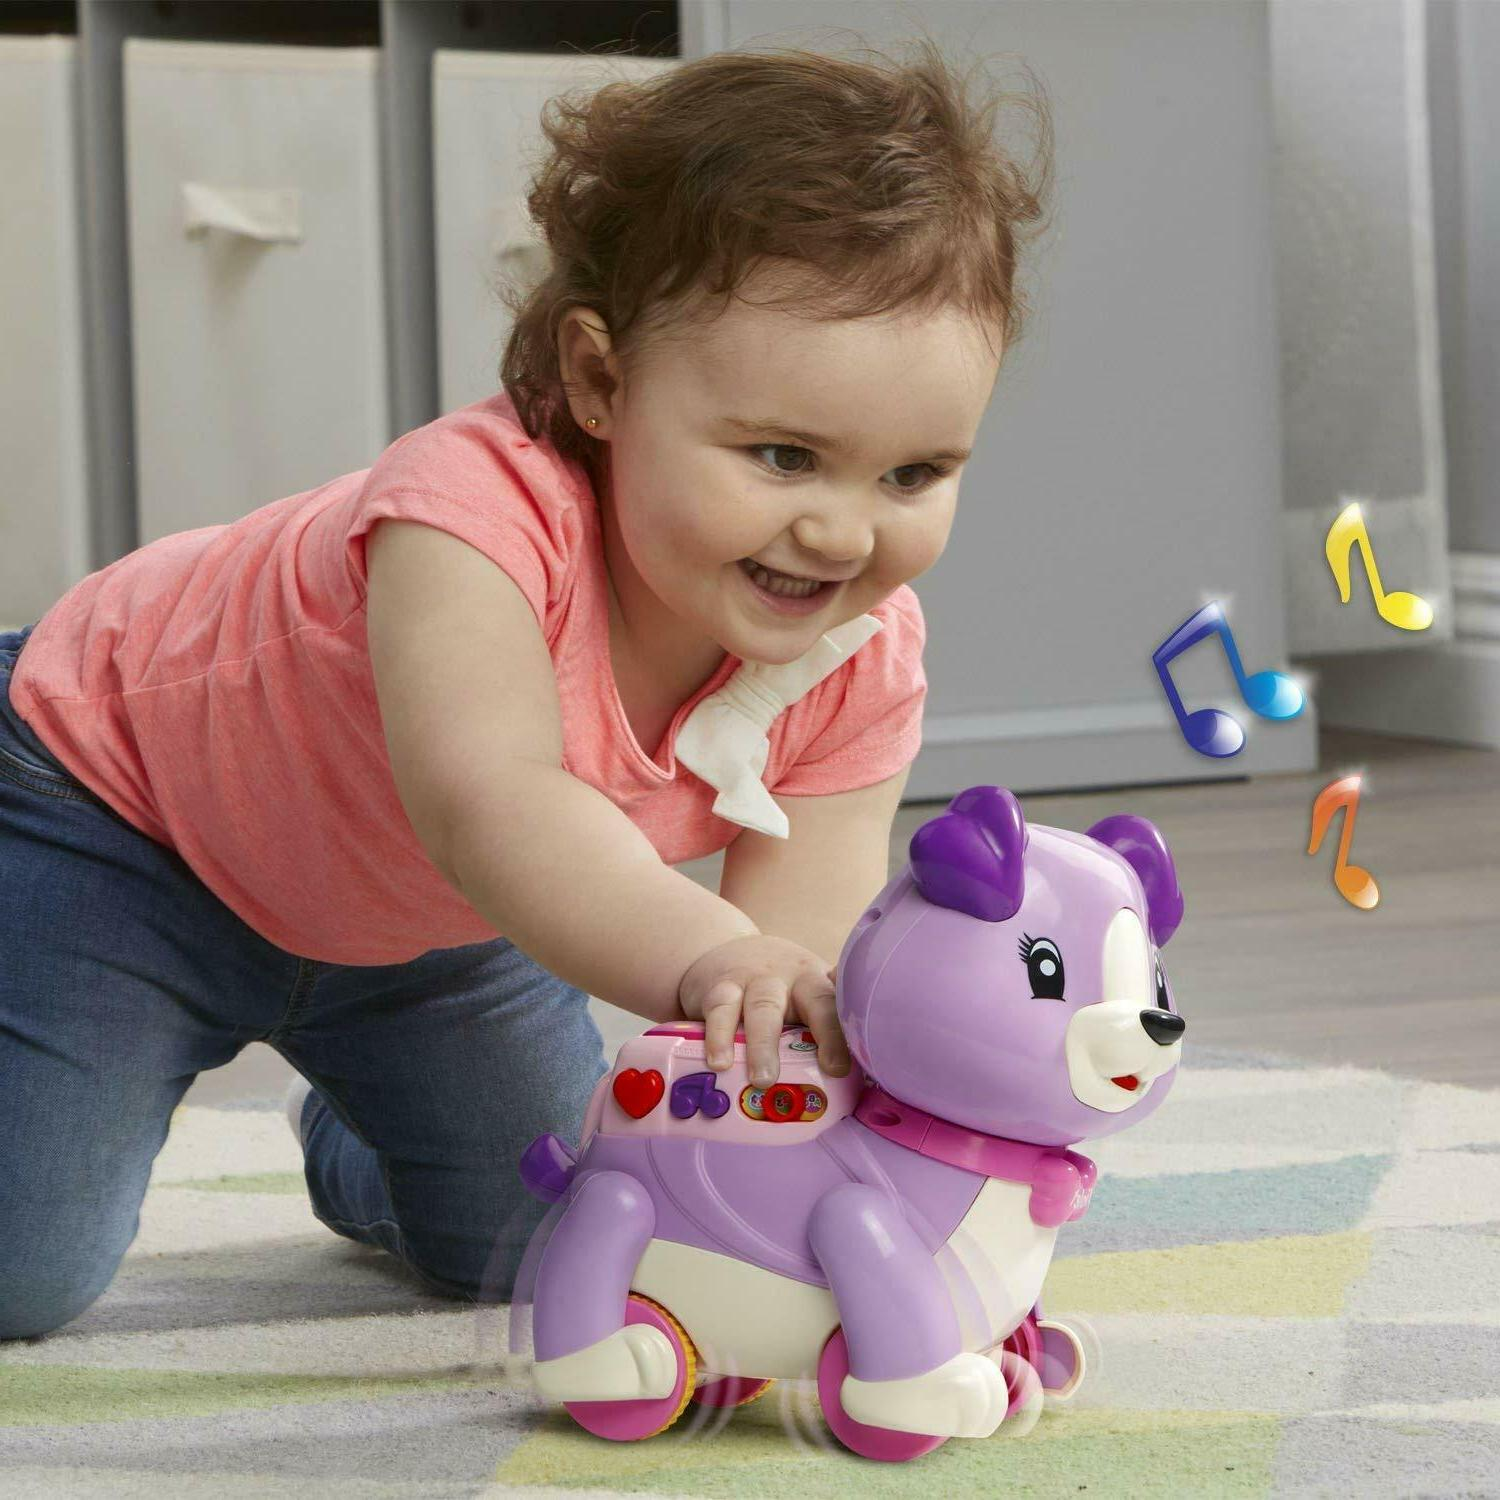 Baby Toys Educational Old 2 Toddlers Girls Activity